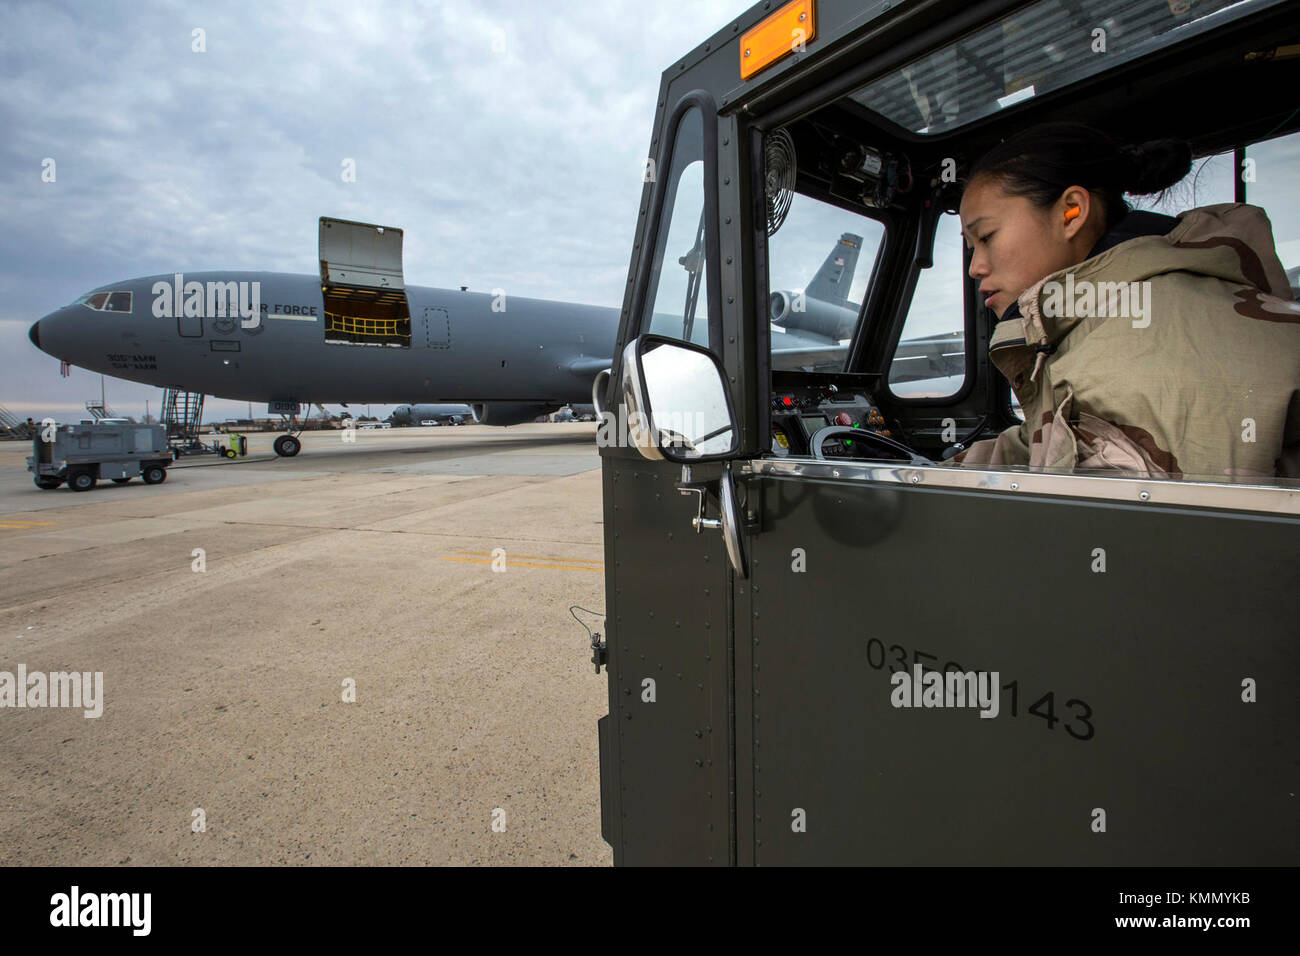 U.S. Air Force Senior Airman Vince Tsang, an Aerial Porter with the 88th Aerial Port Squadron, 514th Air Mobility - Stock Image